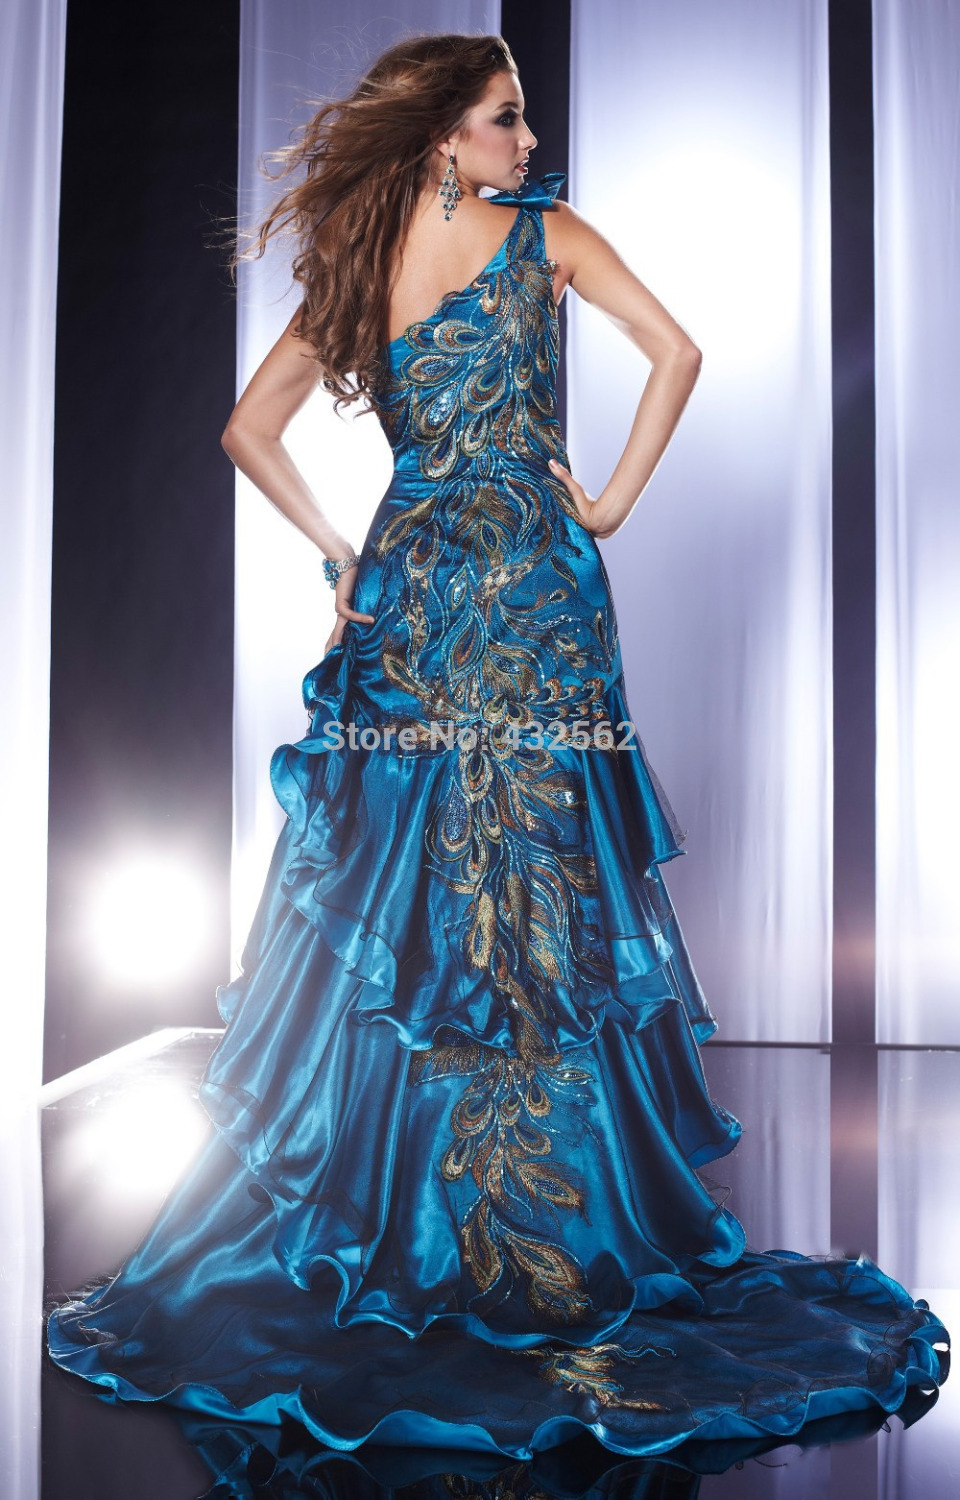 2014 New sexy Peacock feathers Scalloped High low Prom Dresses ...